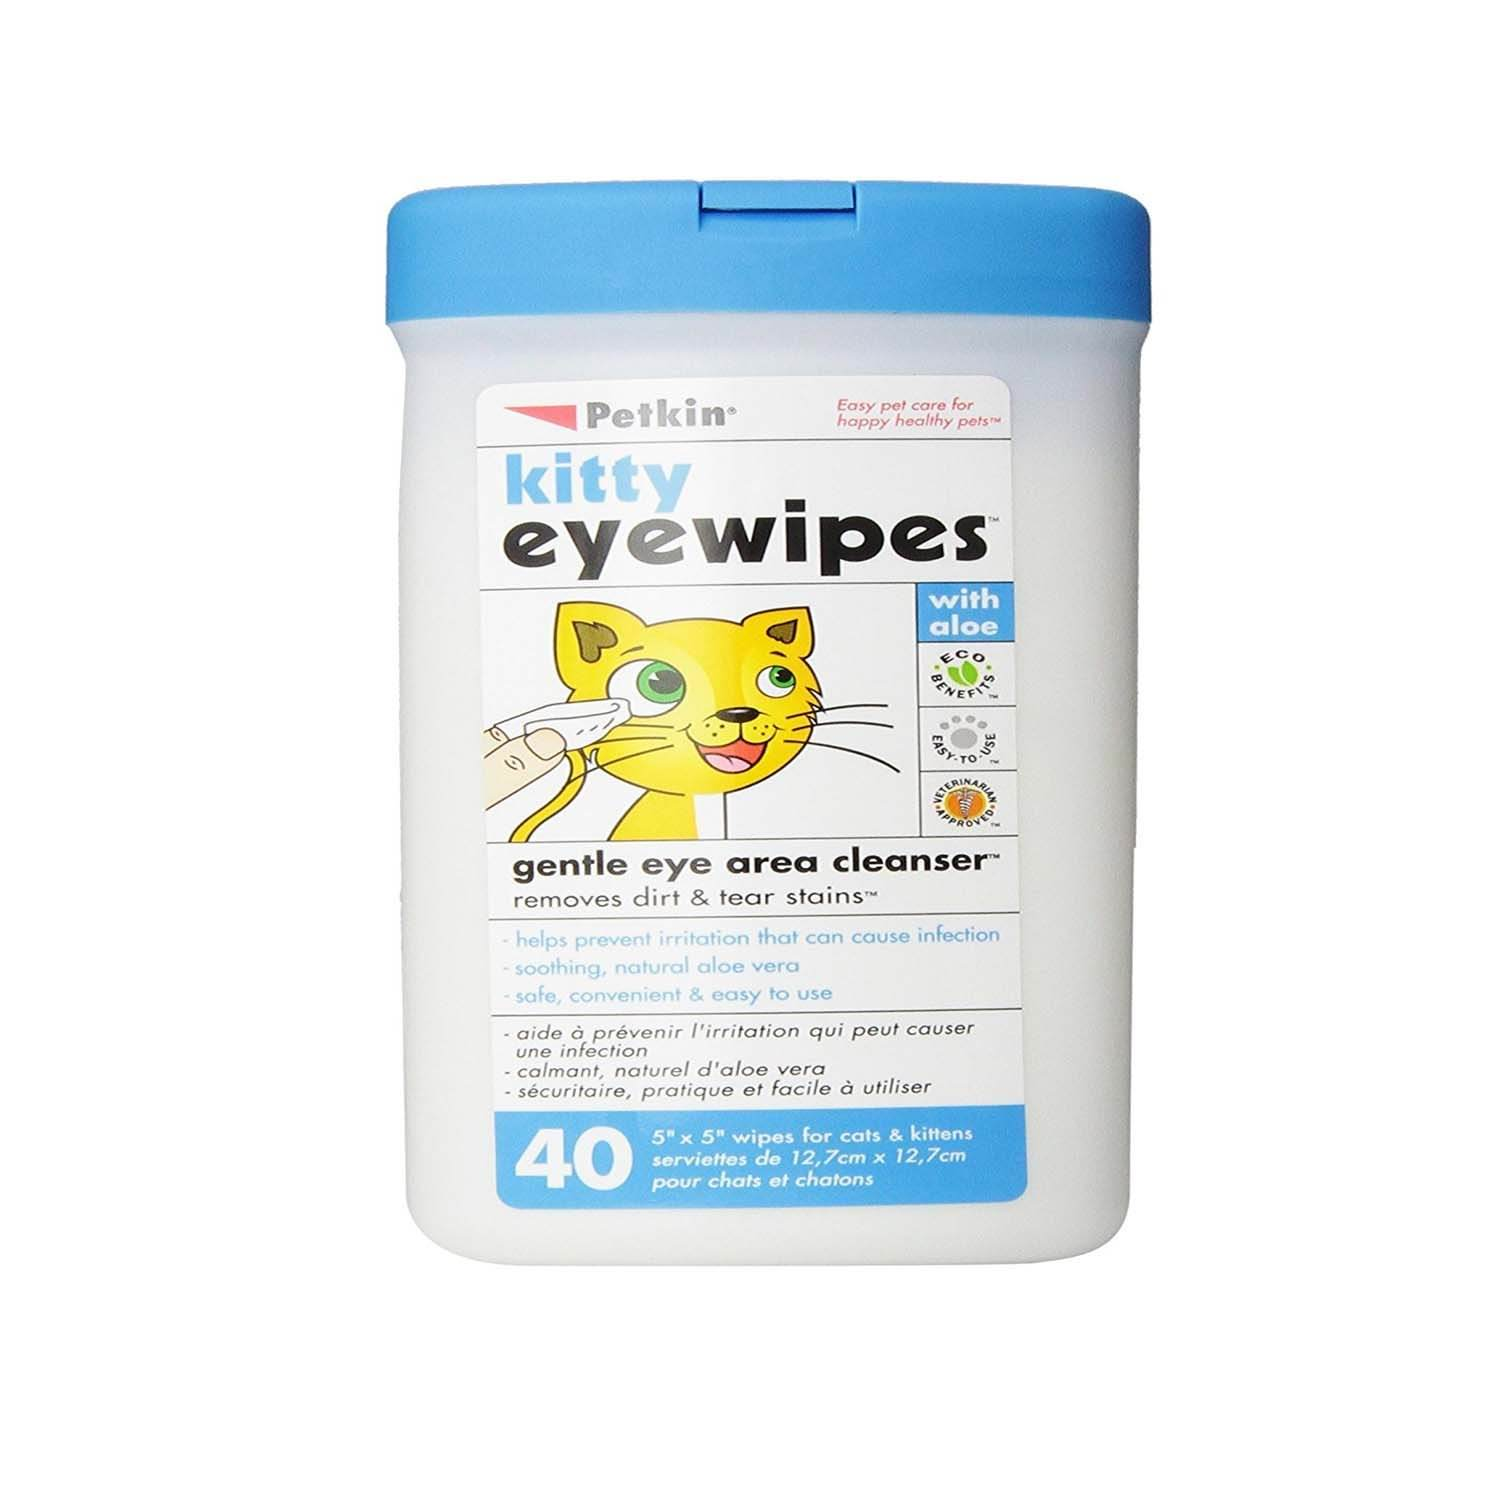 Petkin Kitty Eyewipes 40 count